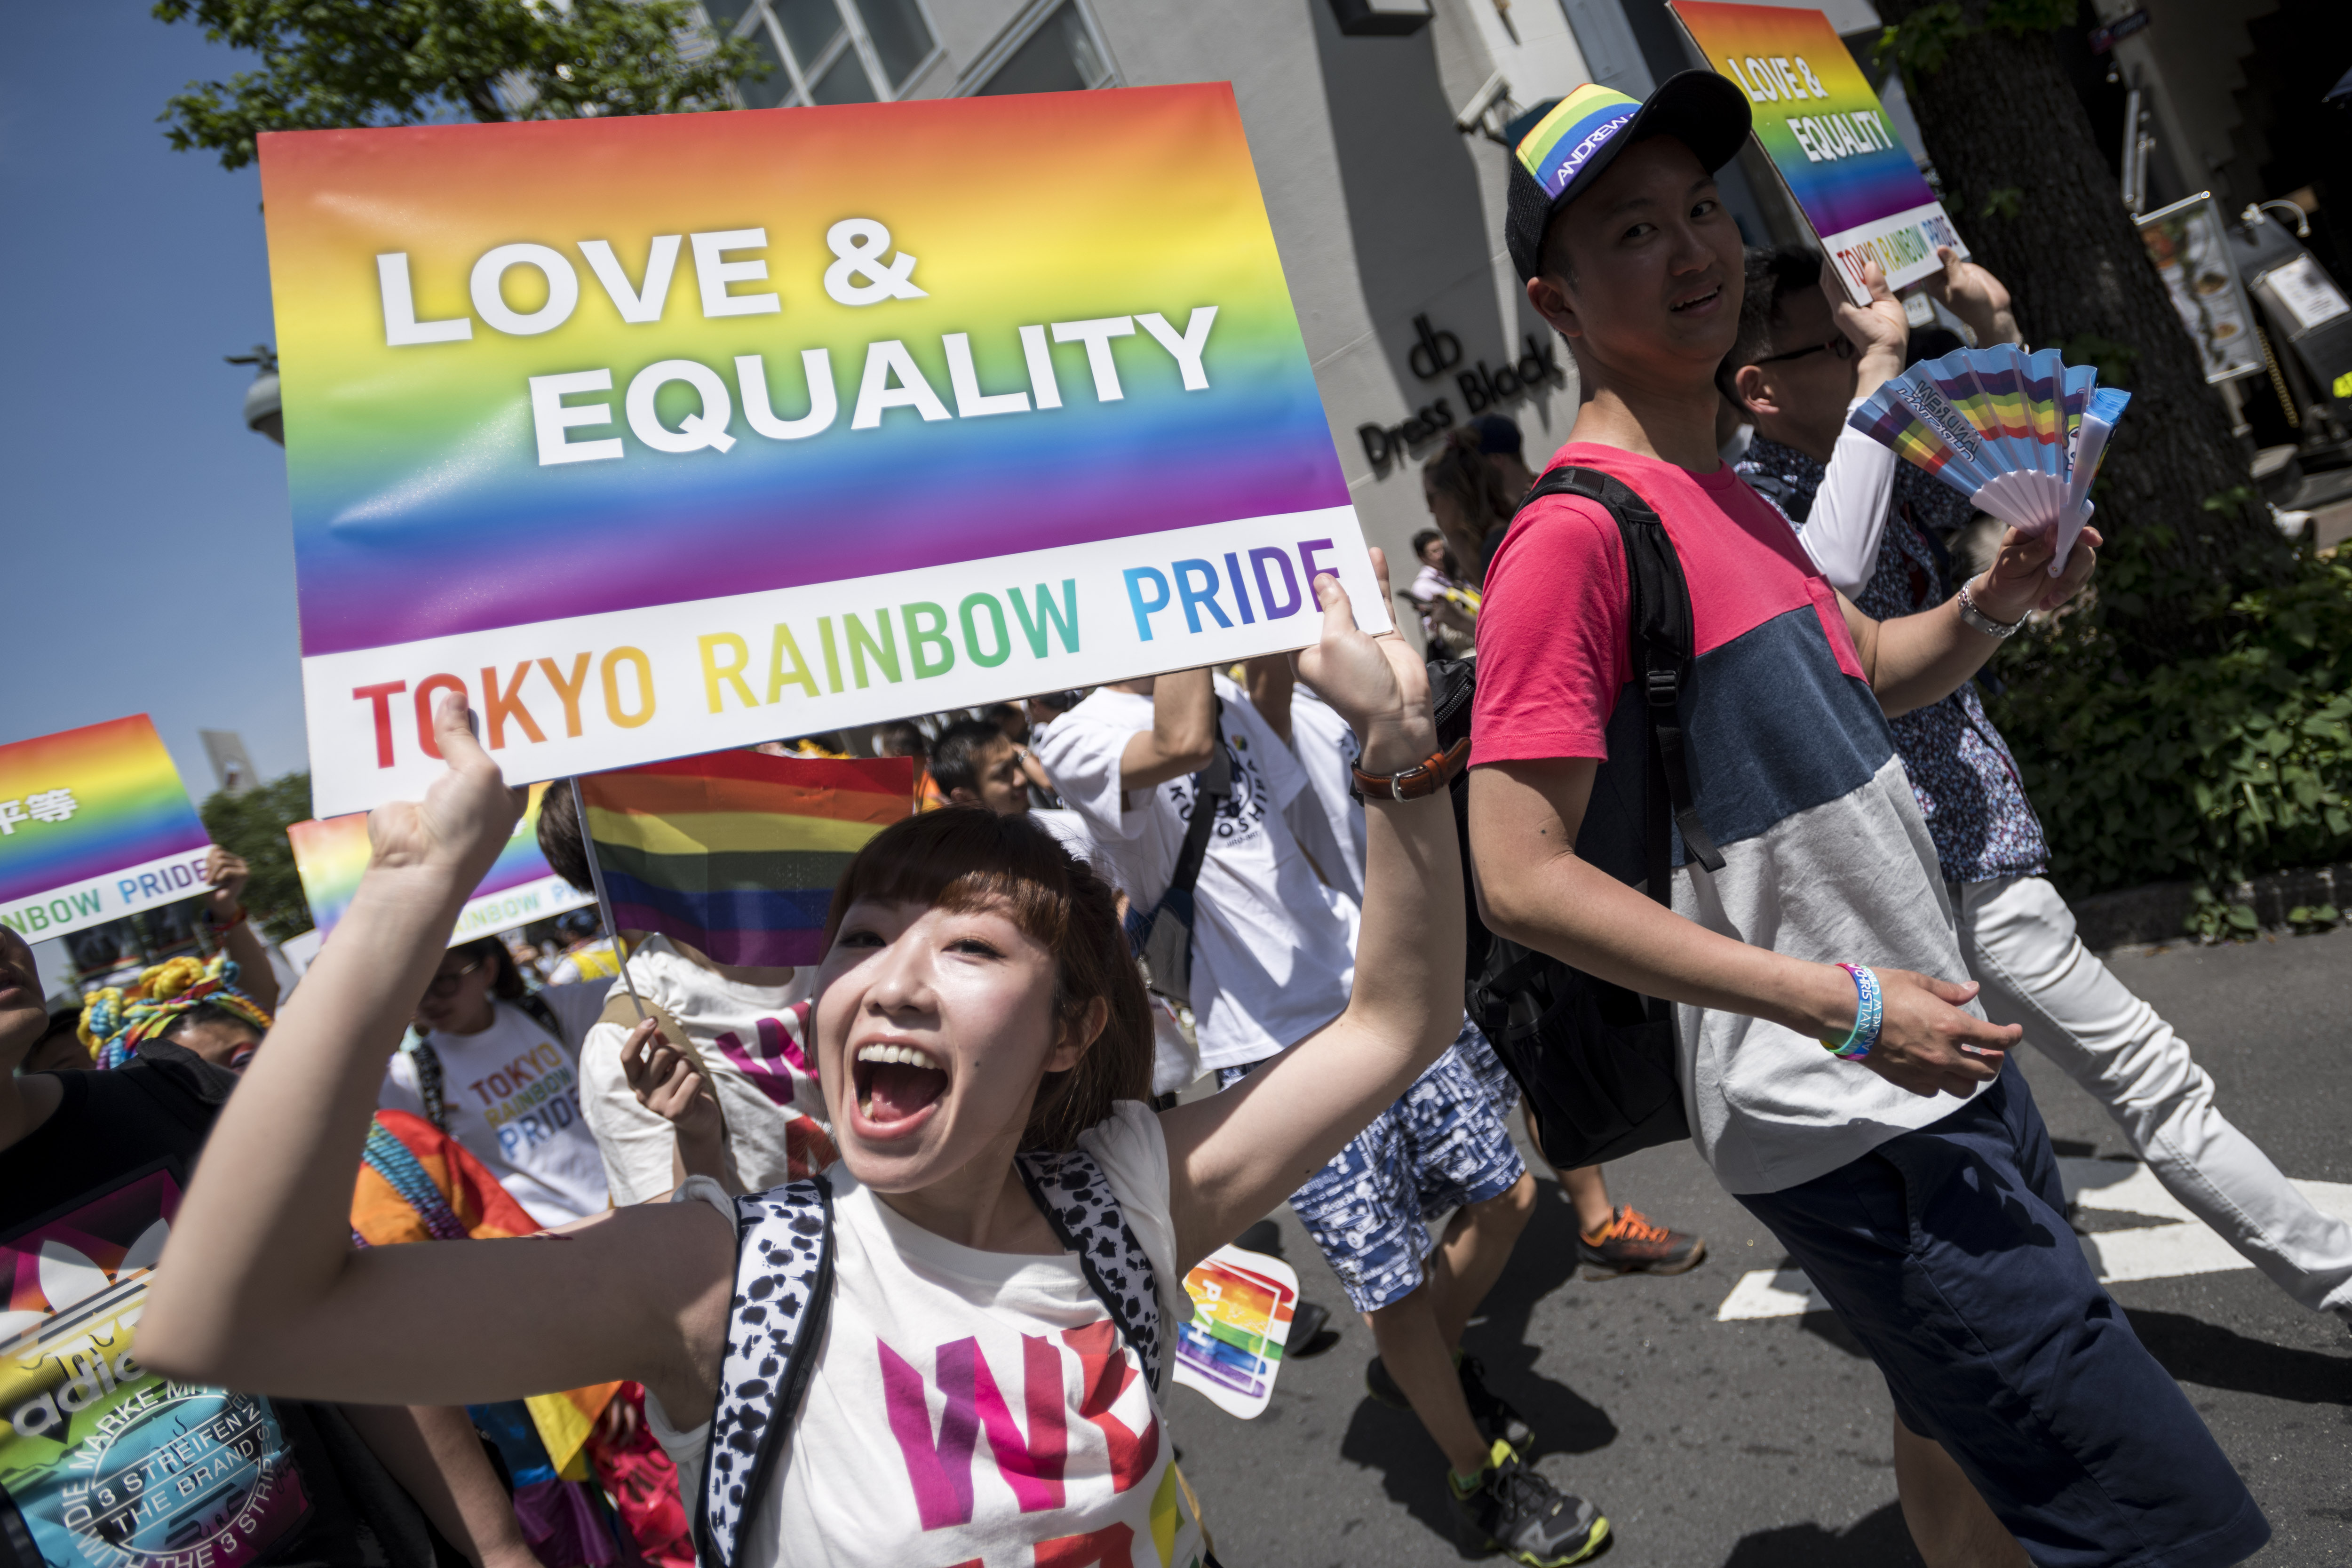 Participants march in the Tokyo Rainbow Pride Parade in Tokyo on May 6, 2018.